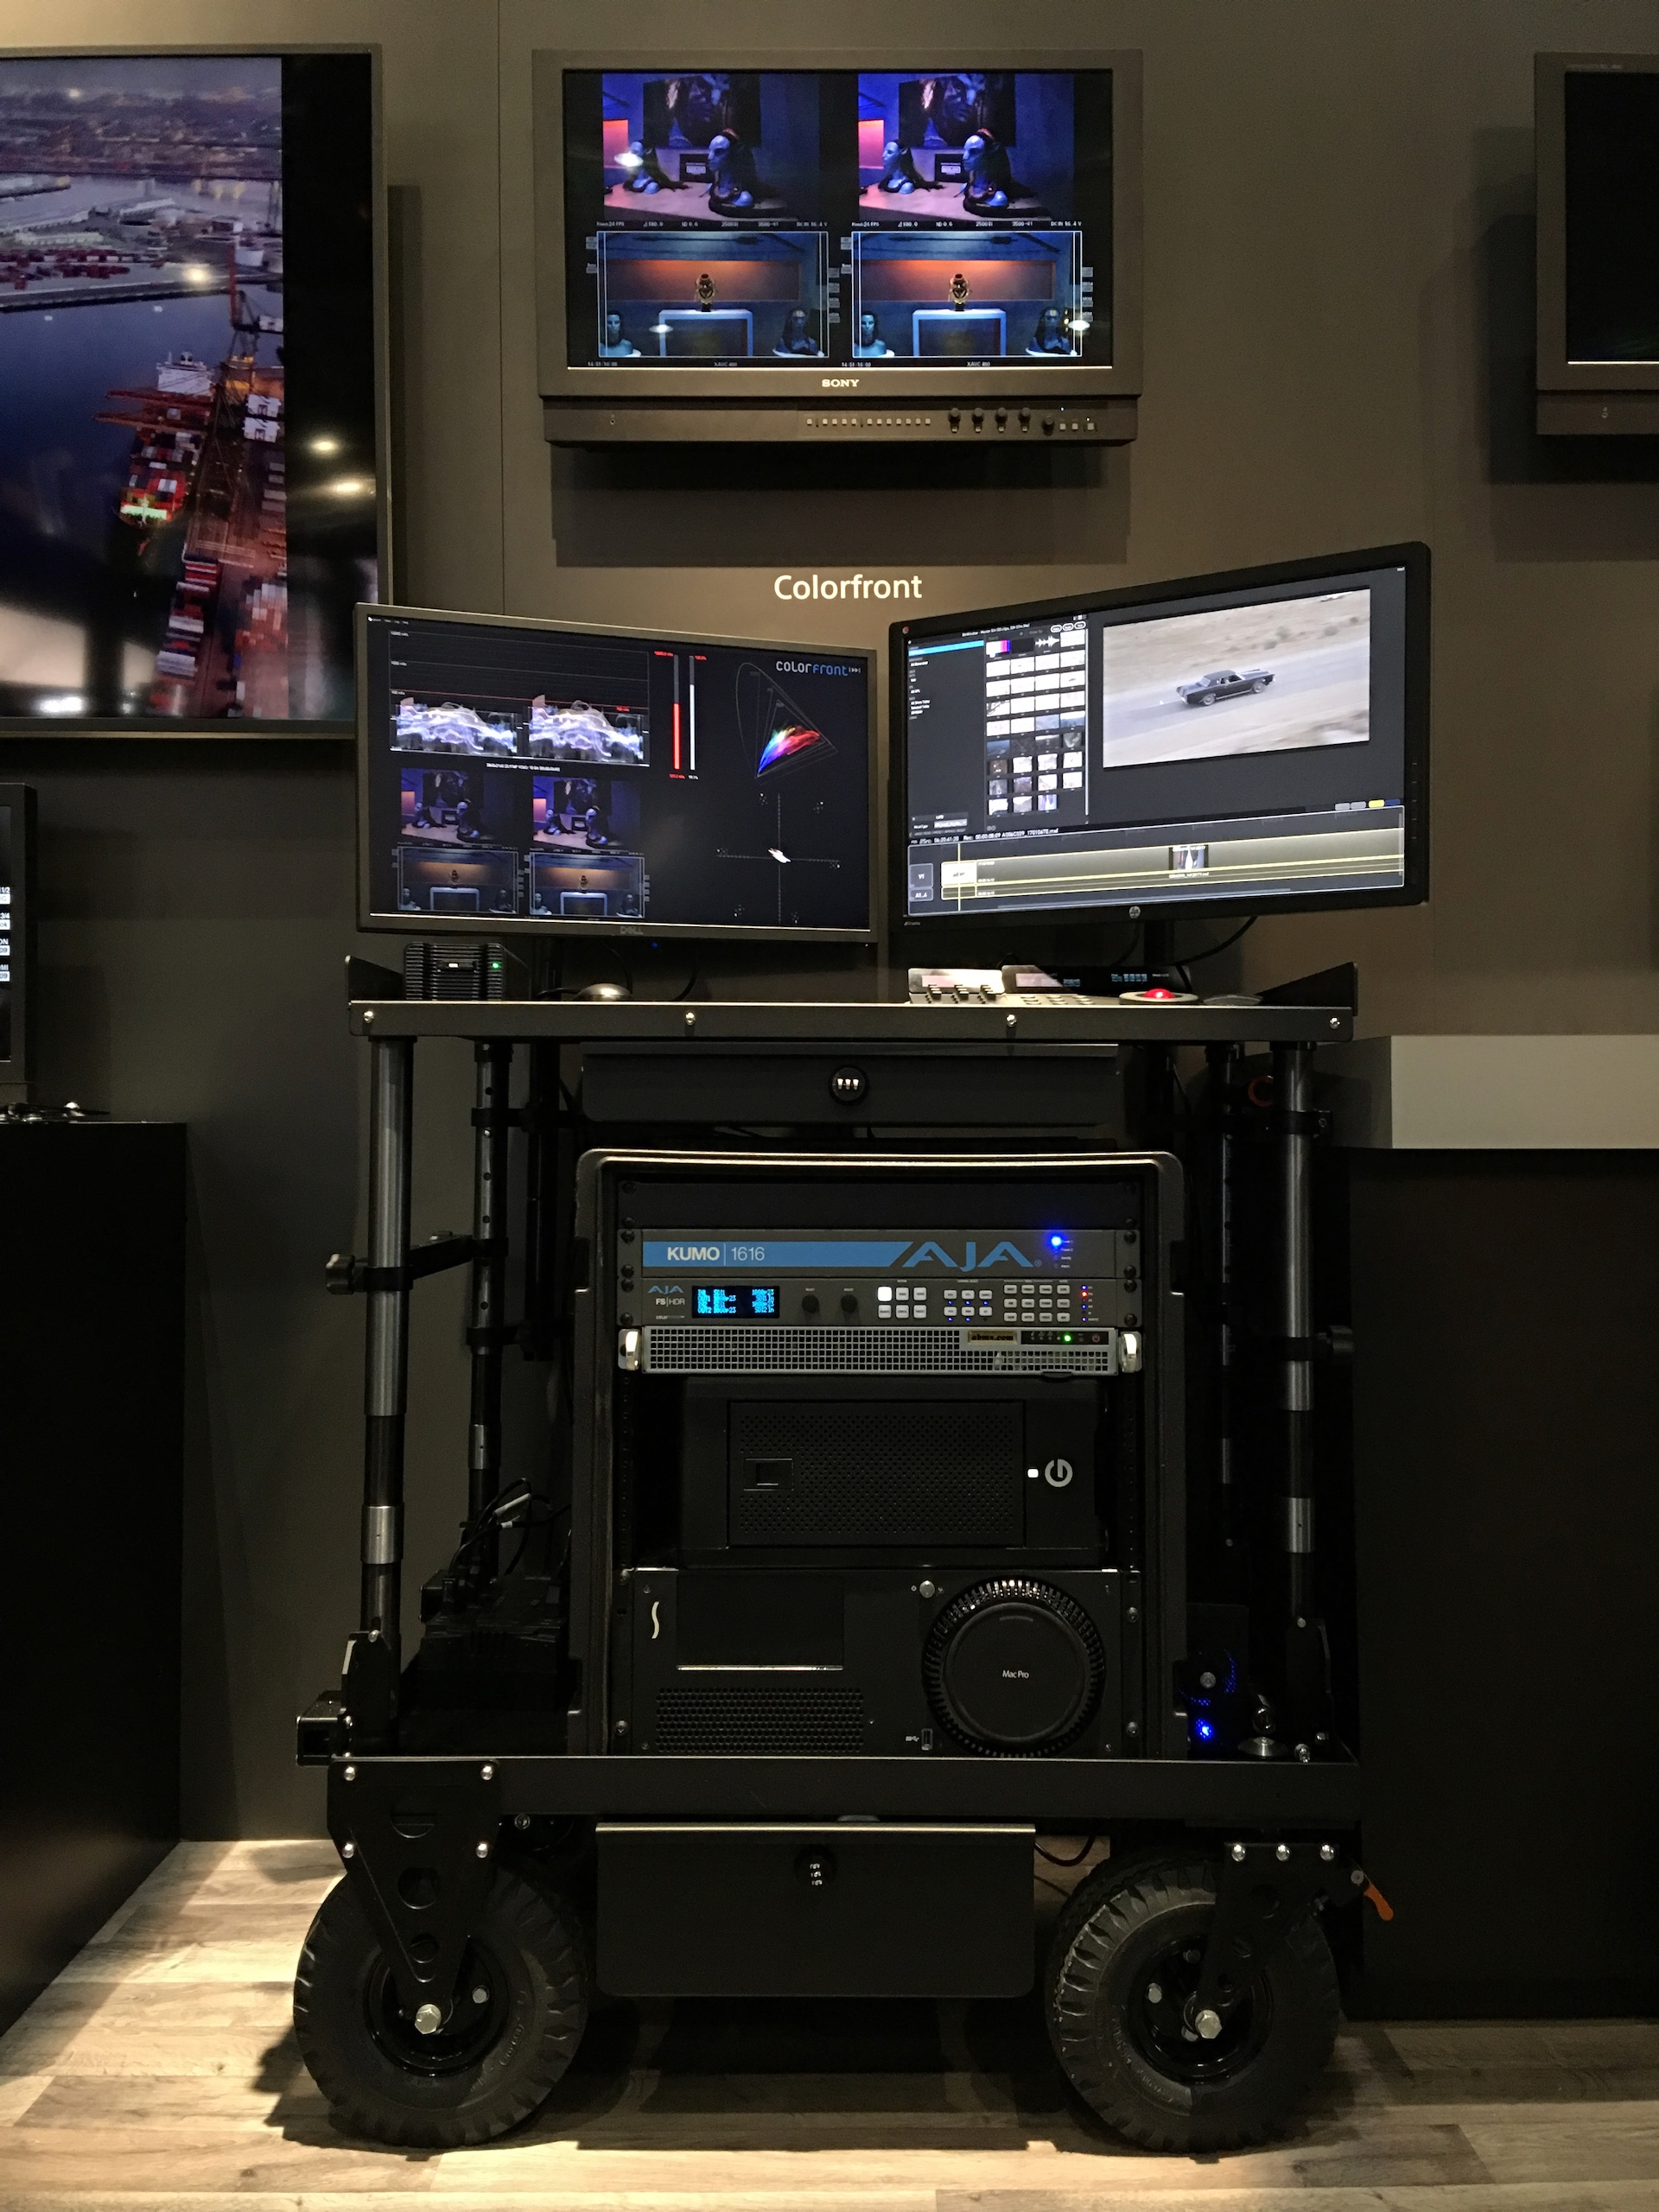 colorfront focuses on settoscreen color fidelity and 8k